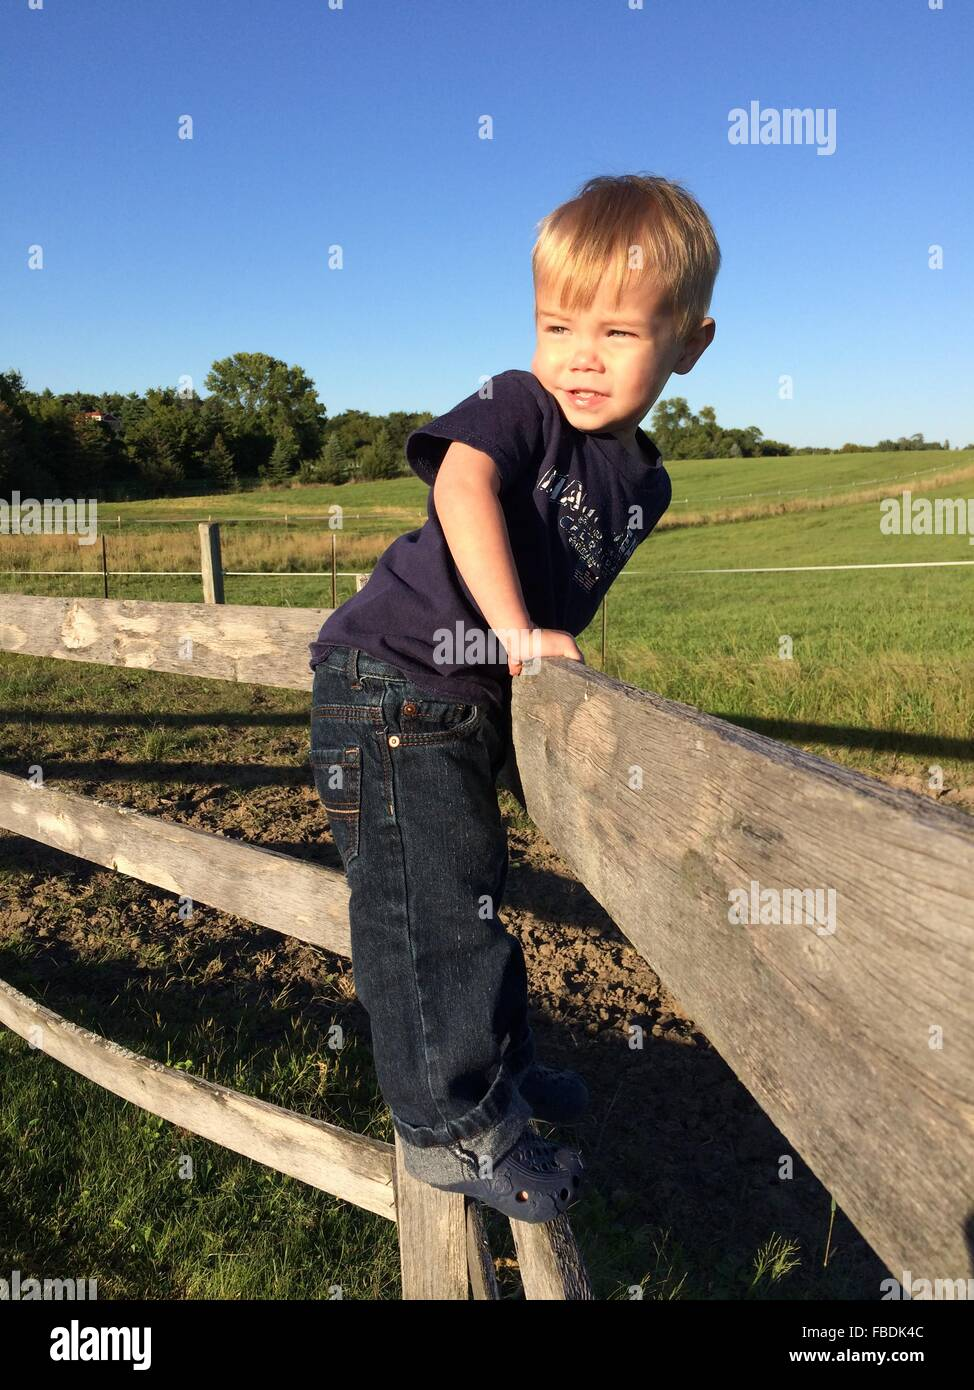 Boy Leaning Over Farm Fence - Stock Image